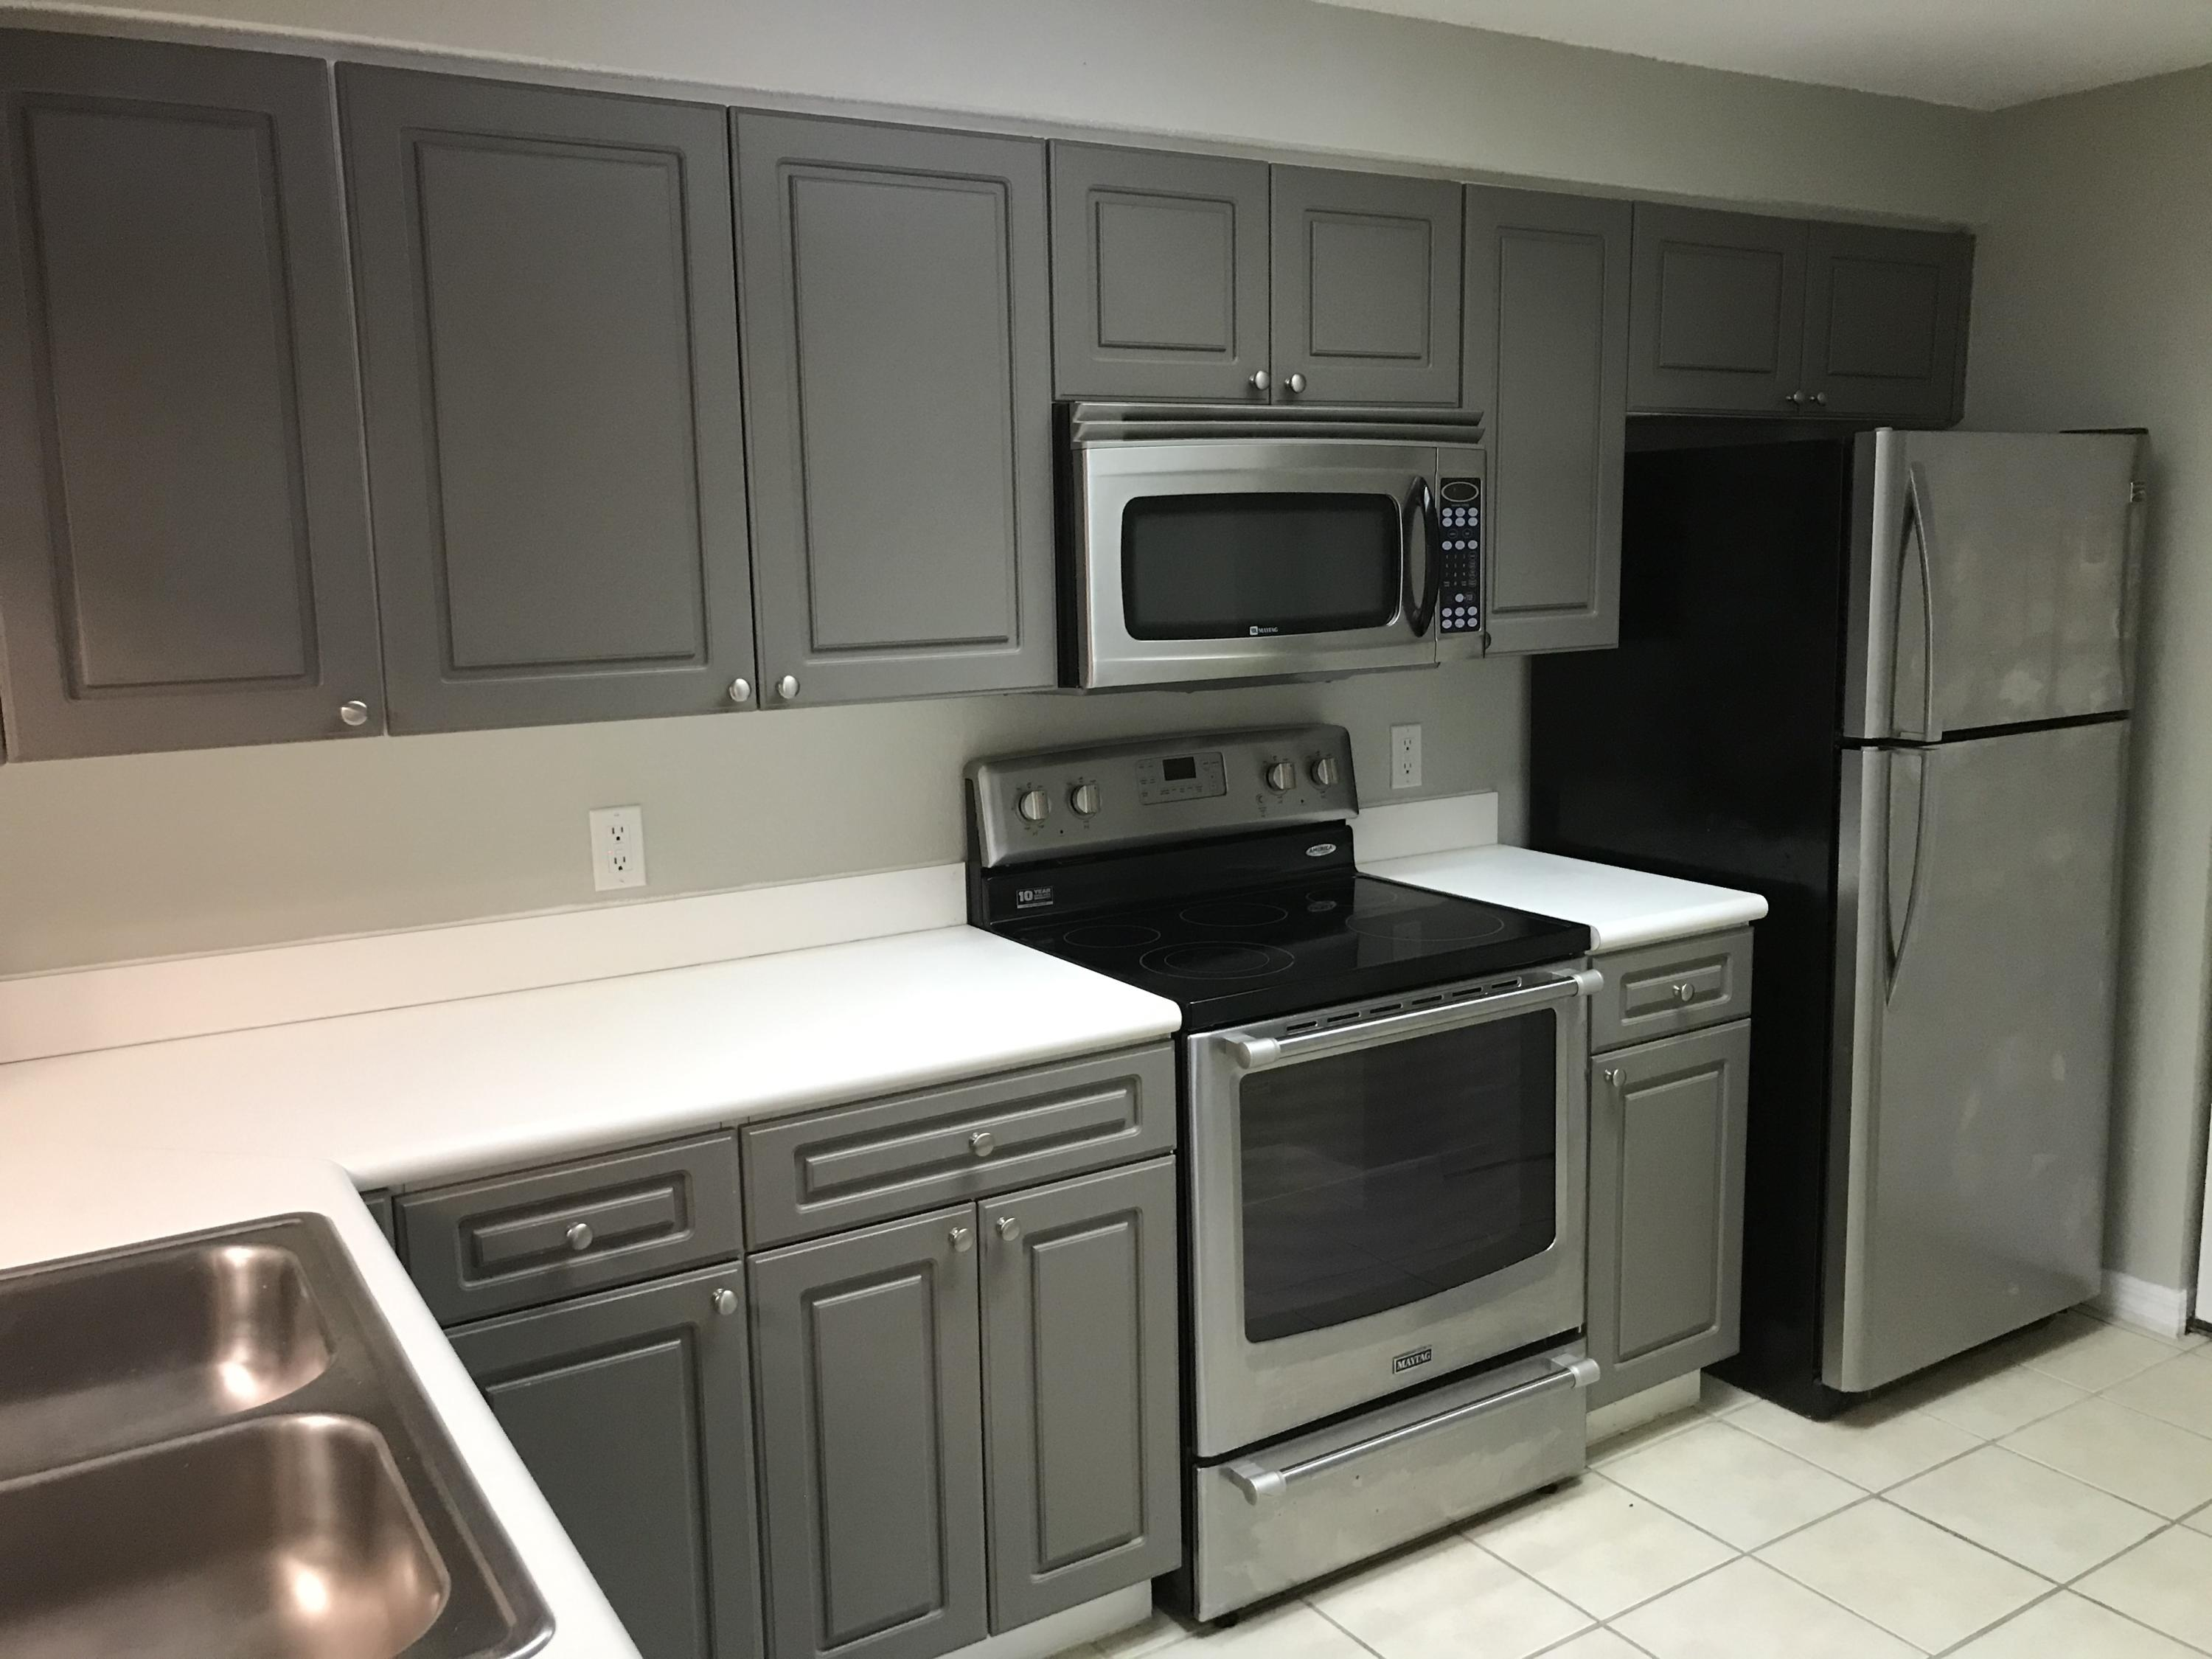 HIGHLY SOUGHT AFTER 1 BEDROOM & 1 BATHROOM 2ND FLOOR CONDO IN DESIRABLE SAN MATERA IN PALM BEACH GARDENS. UNIT HAS NEWER WOOD FLOORS THROUGH OUT (NO CARPET), NEWER APPLIANCES, NEWLY PAINTED INSIDE, LARGE WALK IN CLOSET, INSIDE FULL SIZE WASHER AND DRYER, COVERED AND SCREENED BALCONY, READY FOR NEW TENANT.